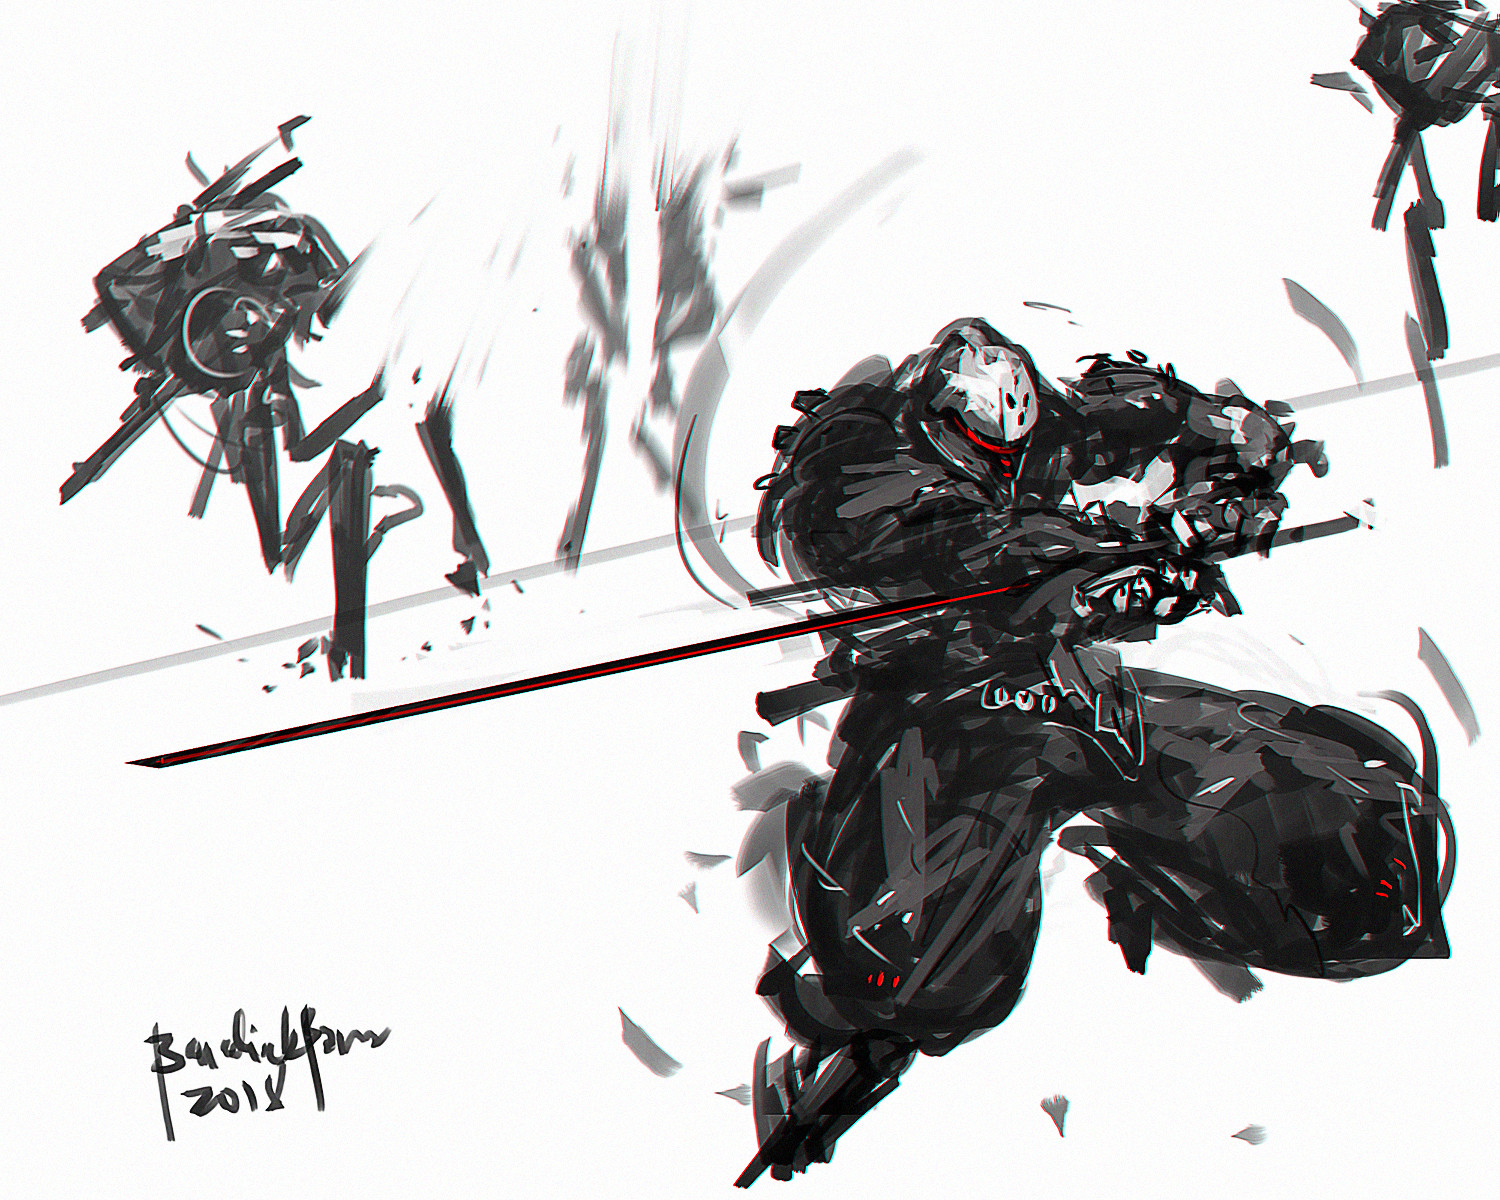 Benedick bana quickslash final lores